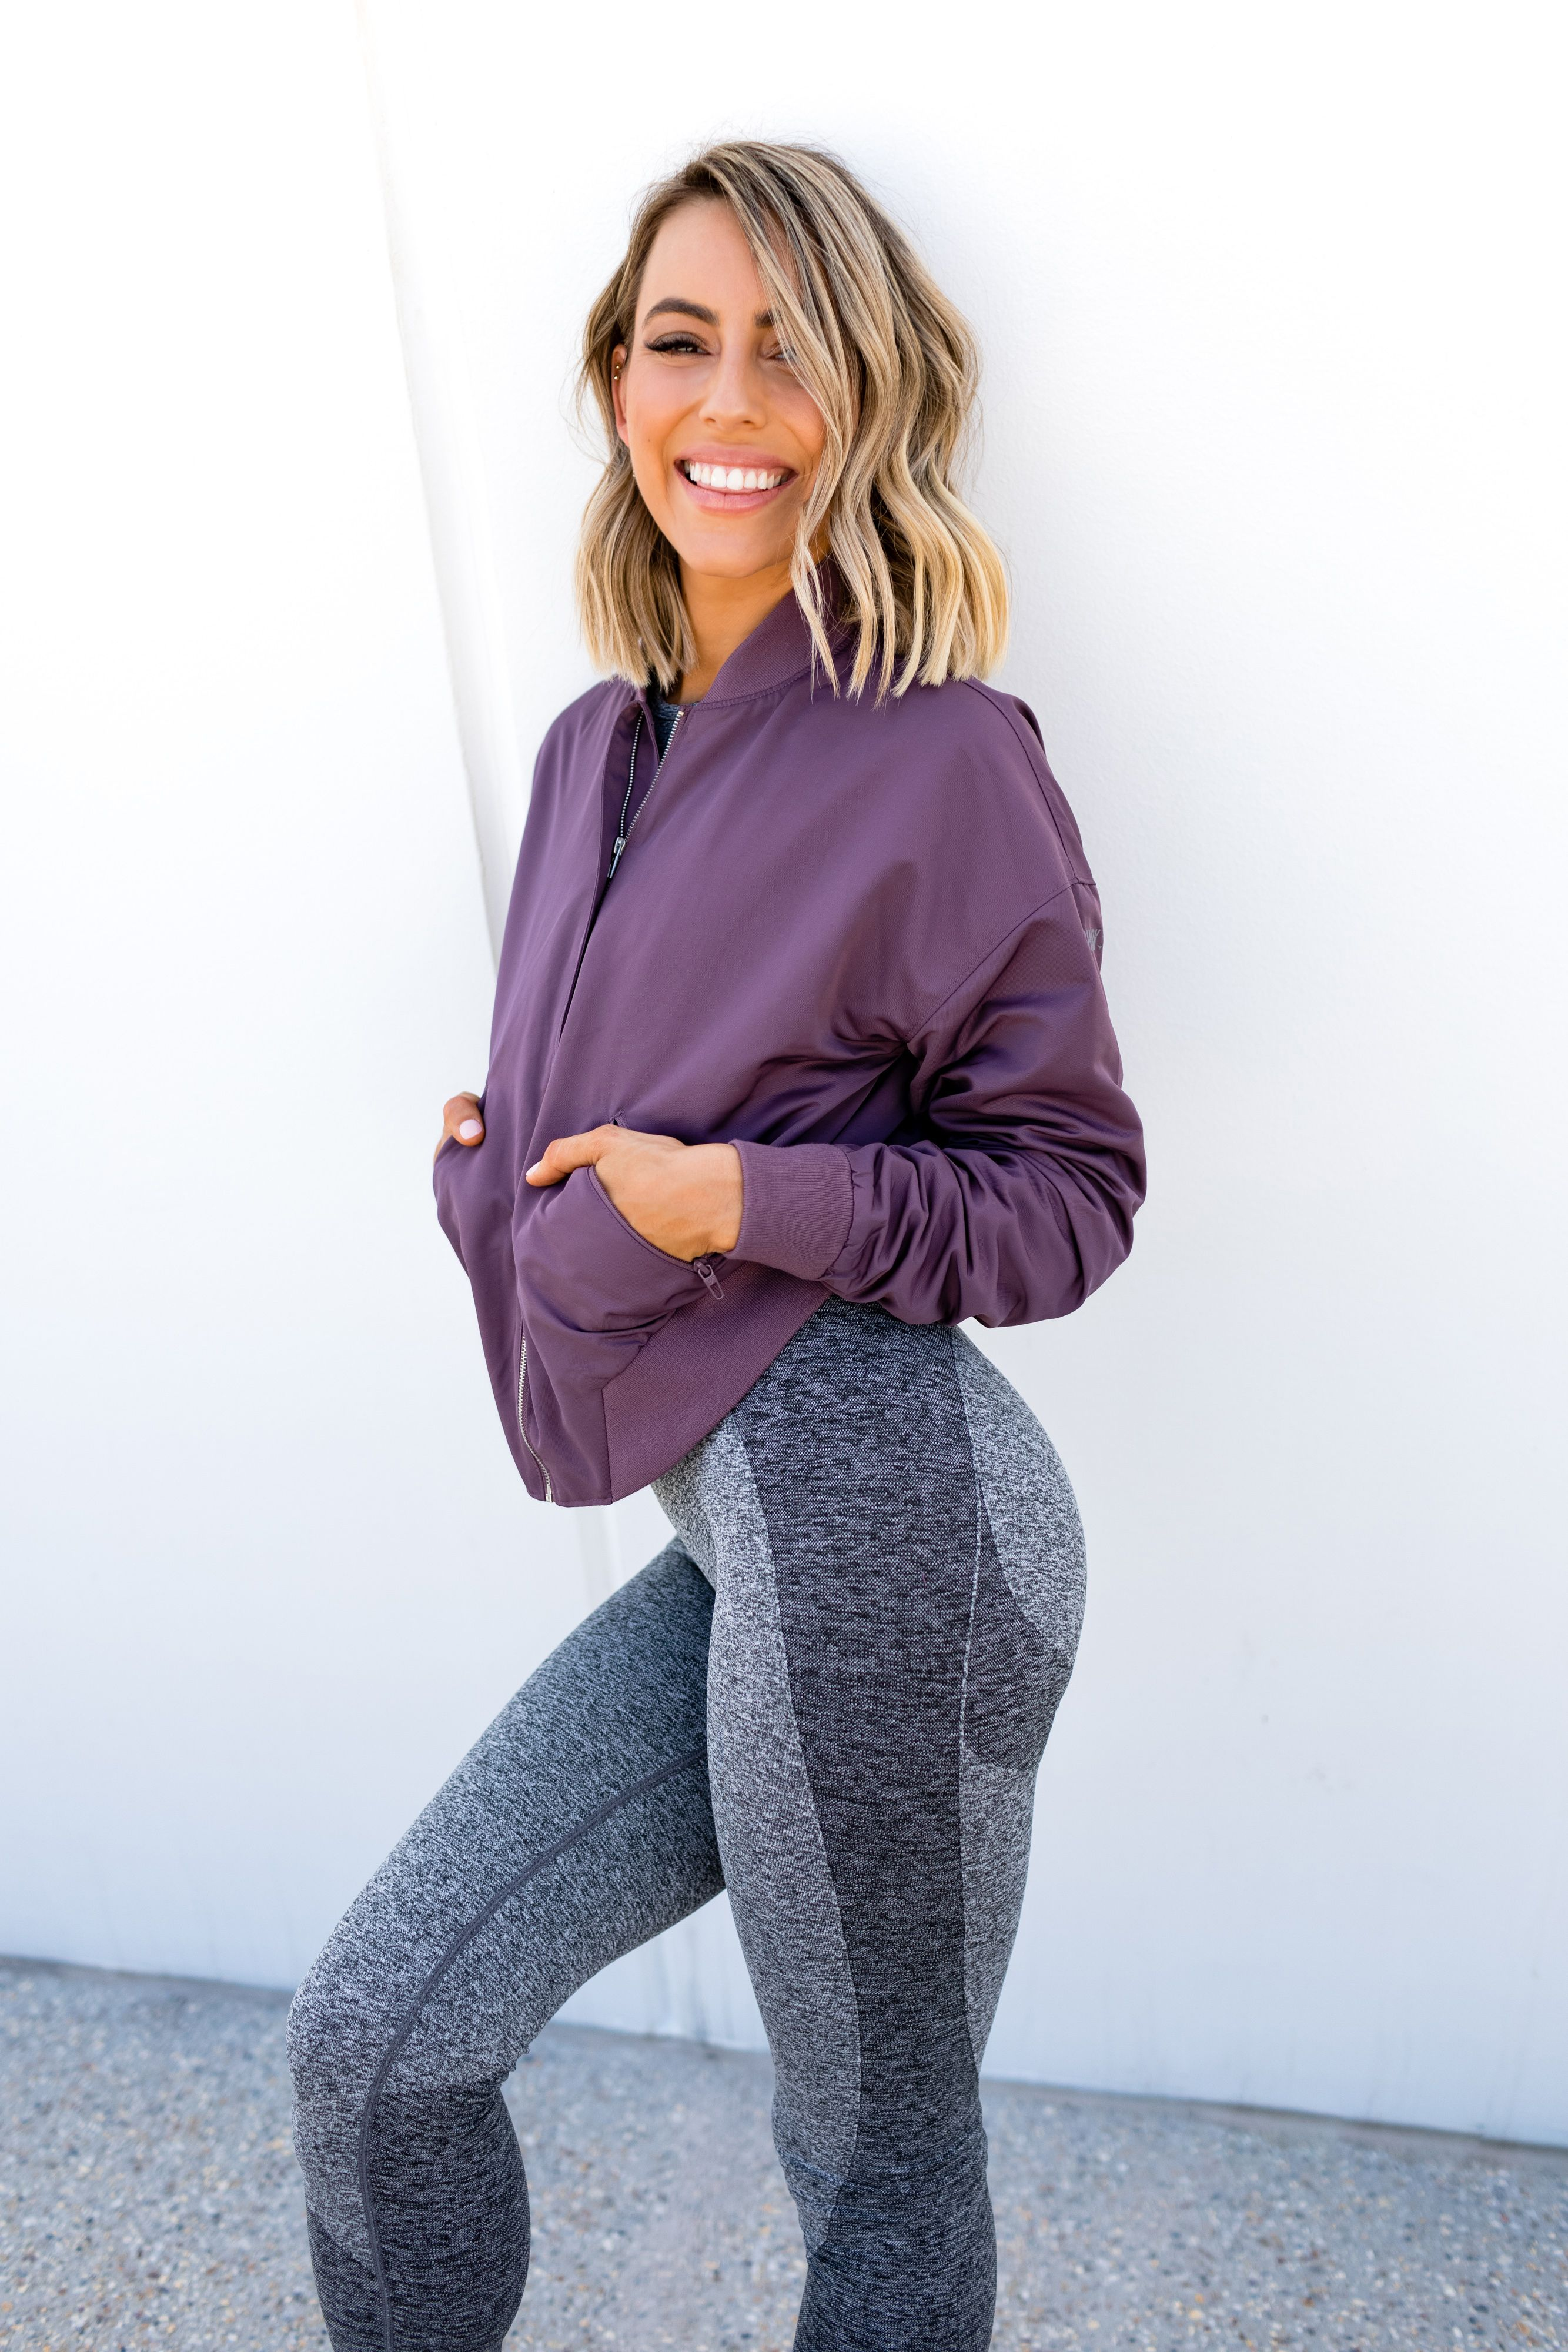 f8c8c895cee628 Your next workout essentials. Madalin Giorgetta styles the new Gymshark  Flex Set and Lo Bomber Jacket. Coming on 12th March at 7pm GMT.